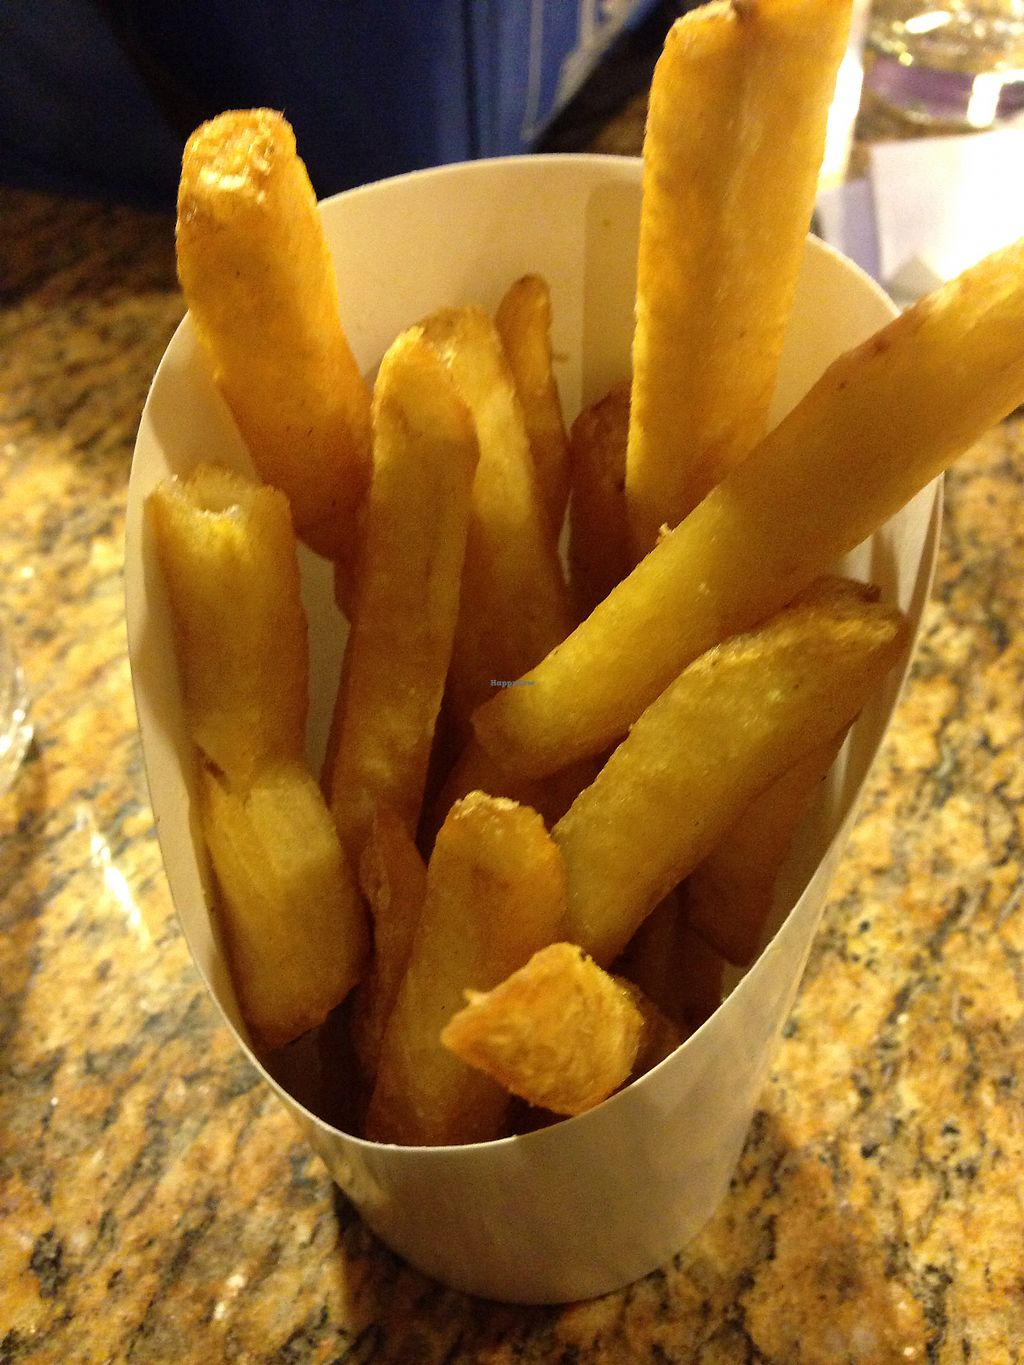 """Photo of Veggie Grill - Downtown Portland  by <a href=""""/members/profile/slo0go"""">slo0go</a> <br/>fries <br/> September 5, 2017  - <a href='/contact/abuse/image/32544/301086'>Report</a>"""